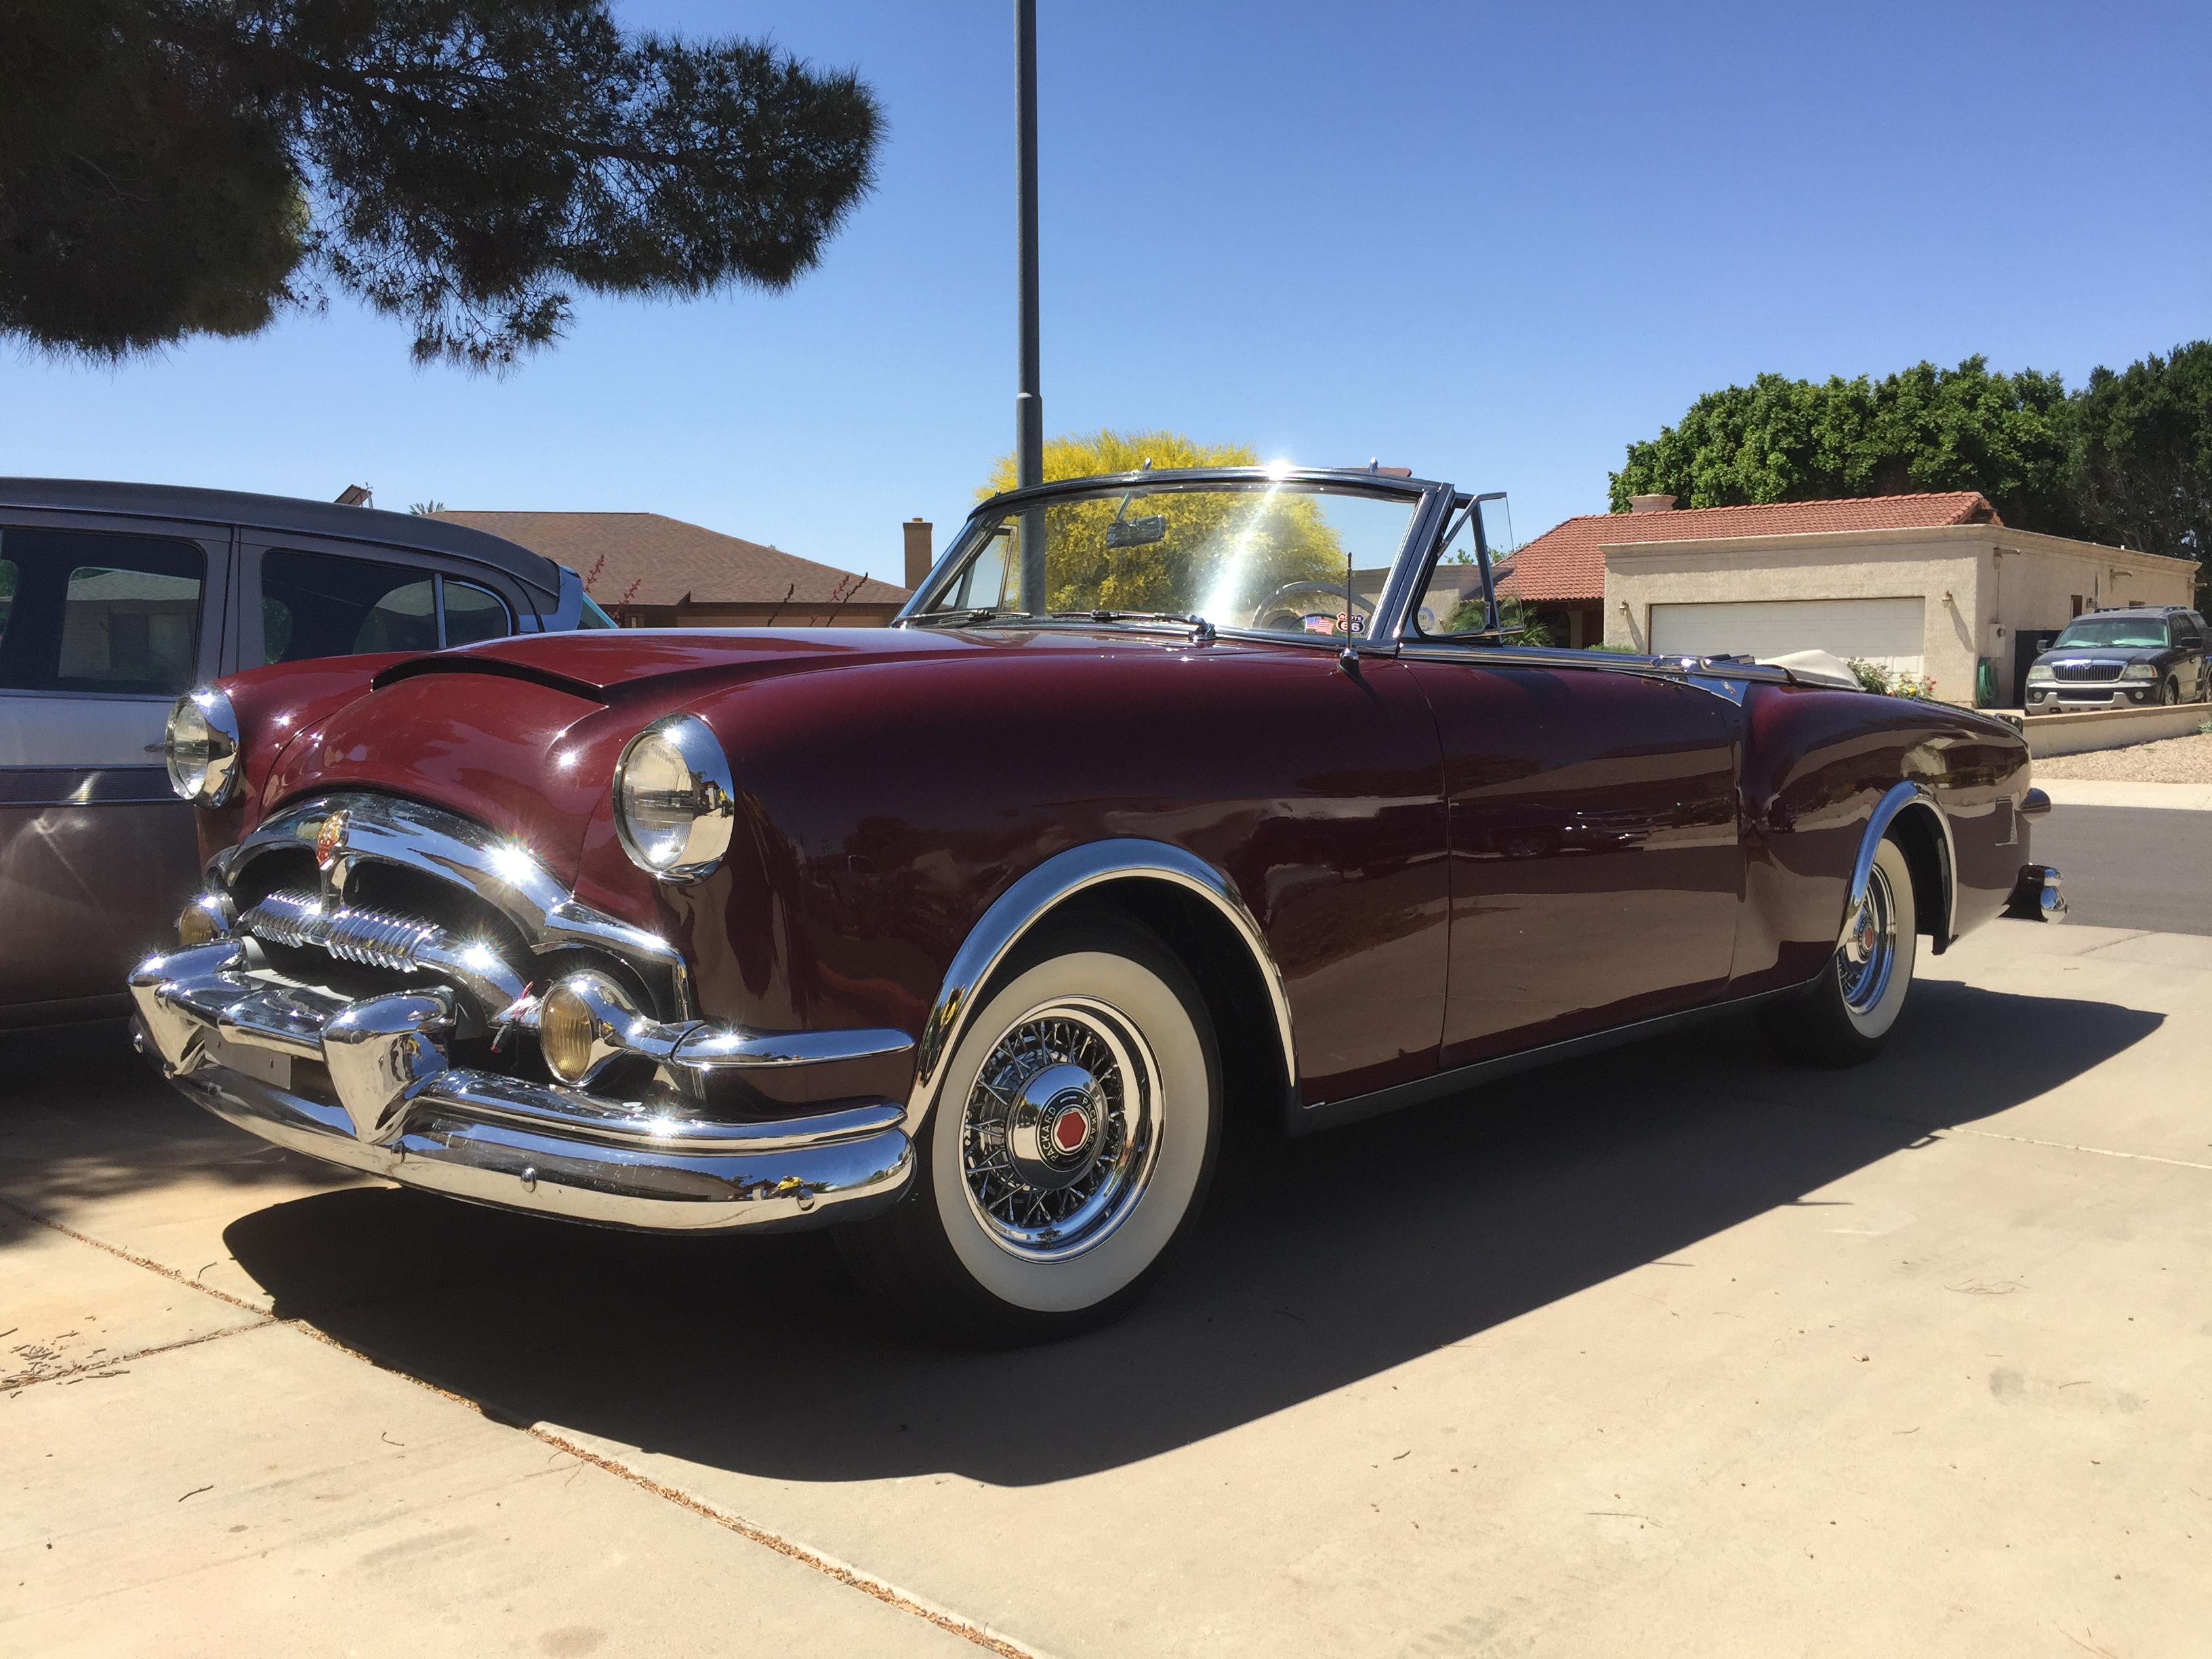 Cars For Sale The Vault Classic 1951 Buick Skylark Convertible 1953 Packard Caribbean Frame Off Restored With Receipts Arriving Shortly